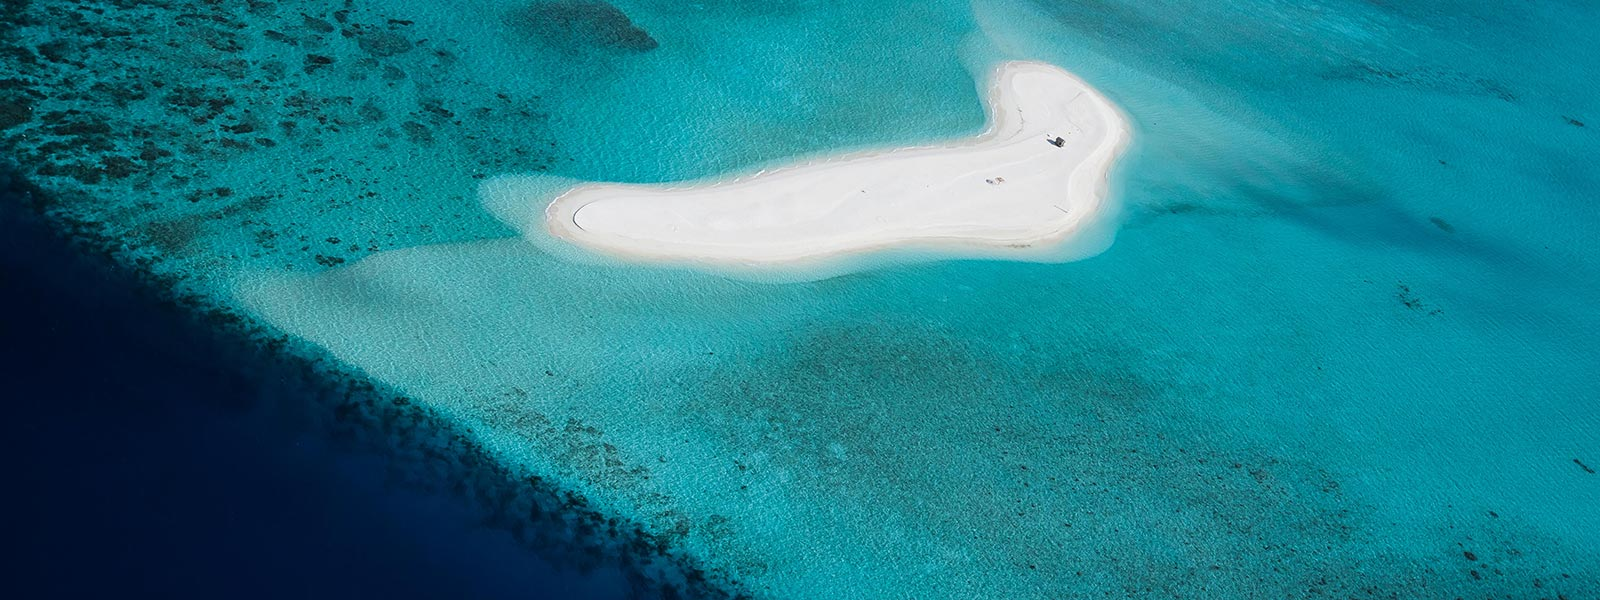 hurawalhi-maldives-dream-island-1600x600-1